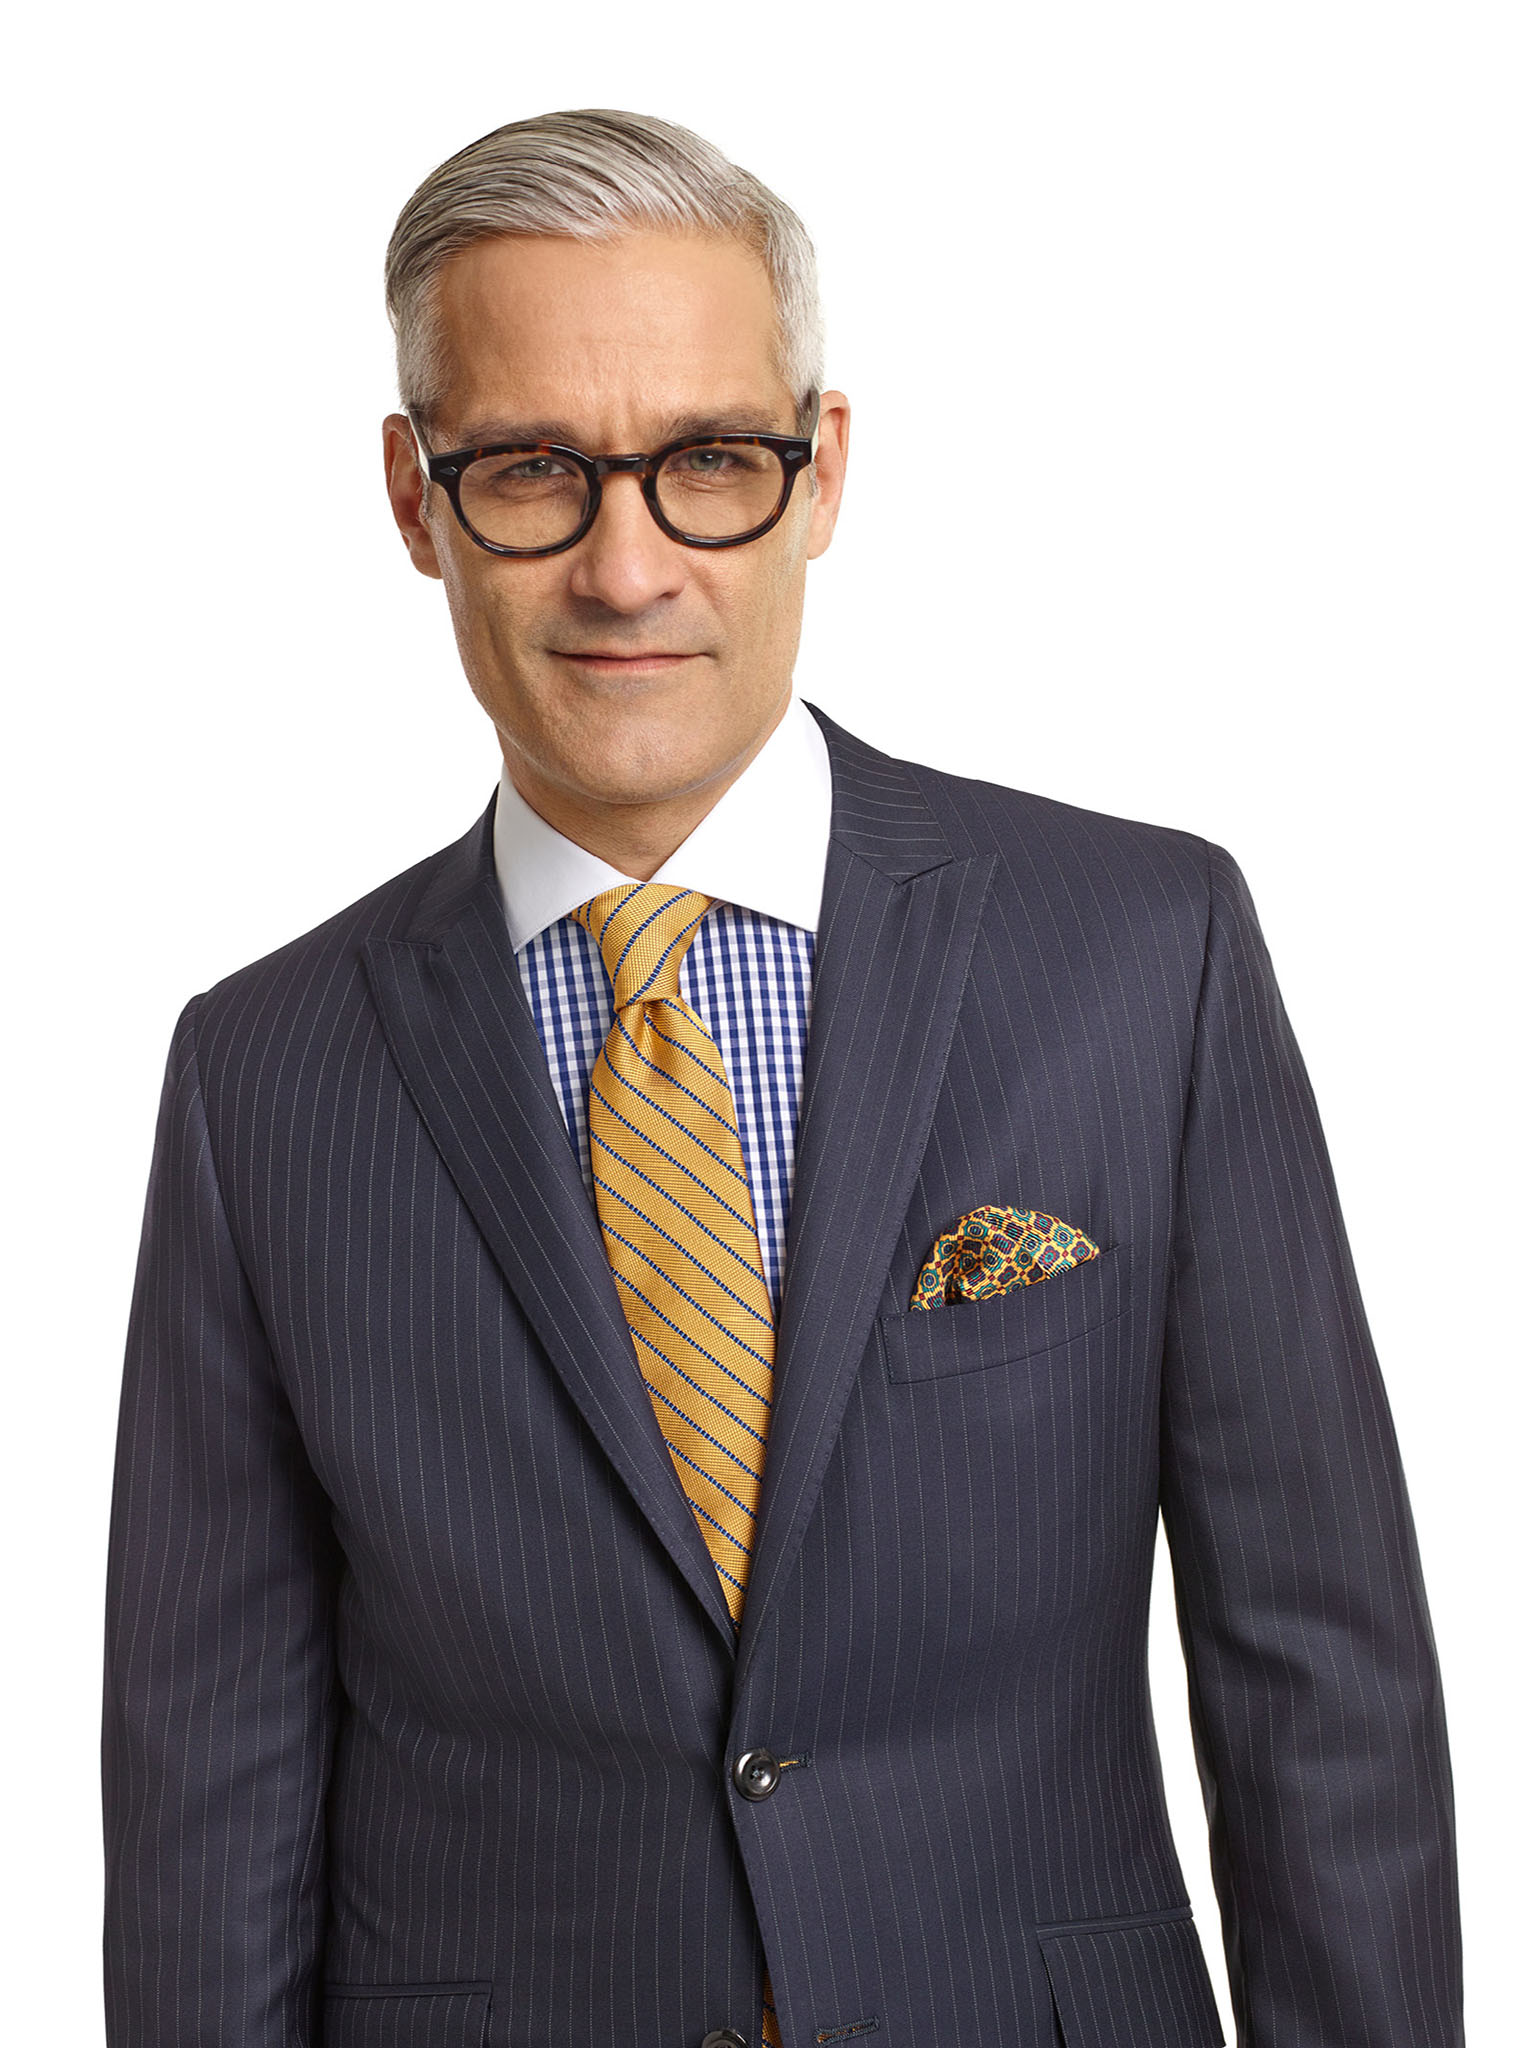 Custom Suits Bespoke Suits Mens Suits Tampa Sarasota Lakeland St Petersburg Florida